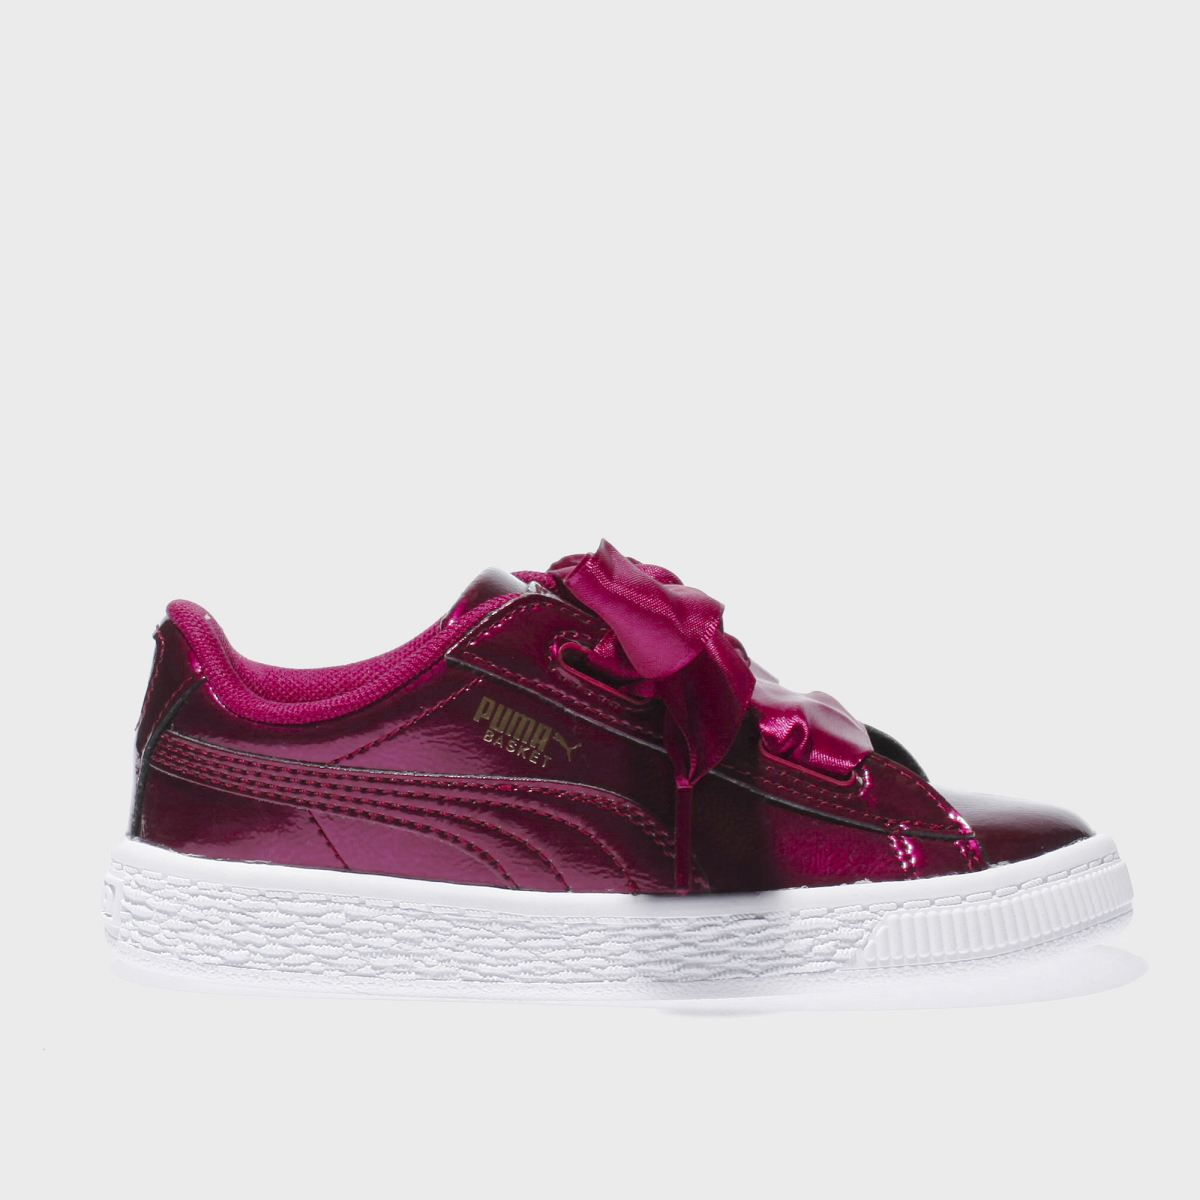 Puma Burgundy Basket Heart Glam Girls Toddler Toddler